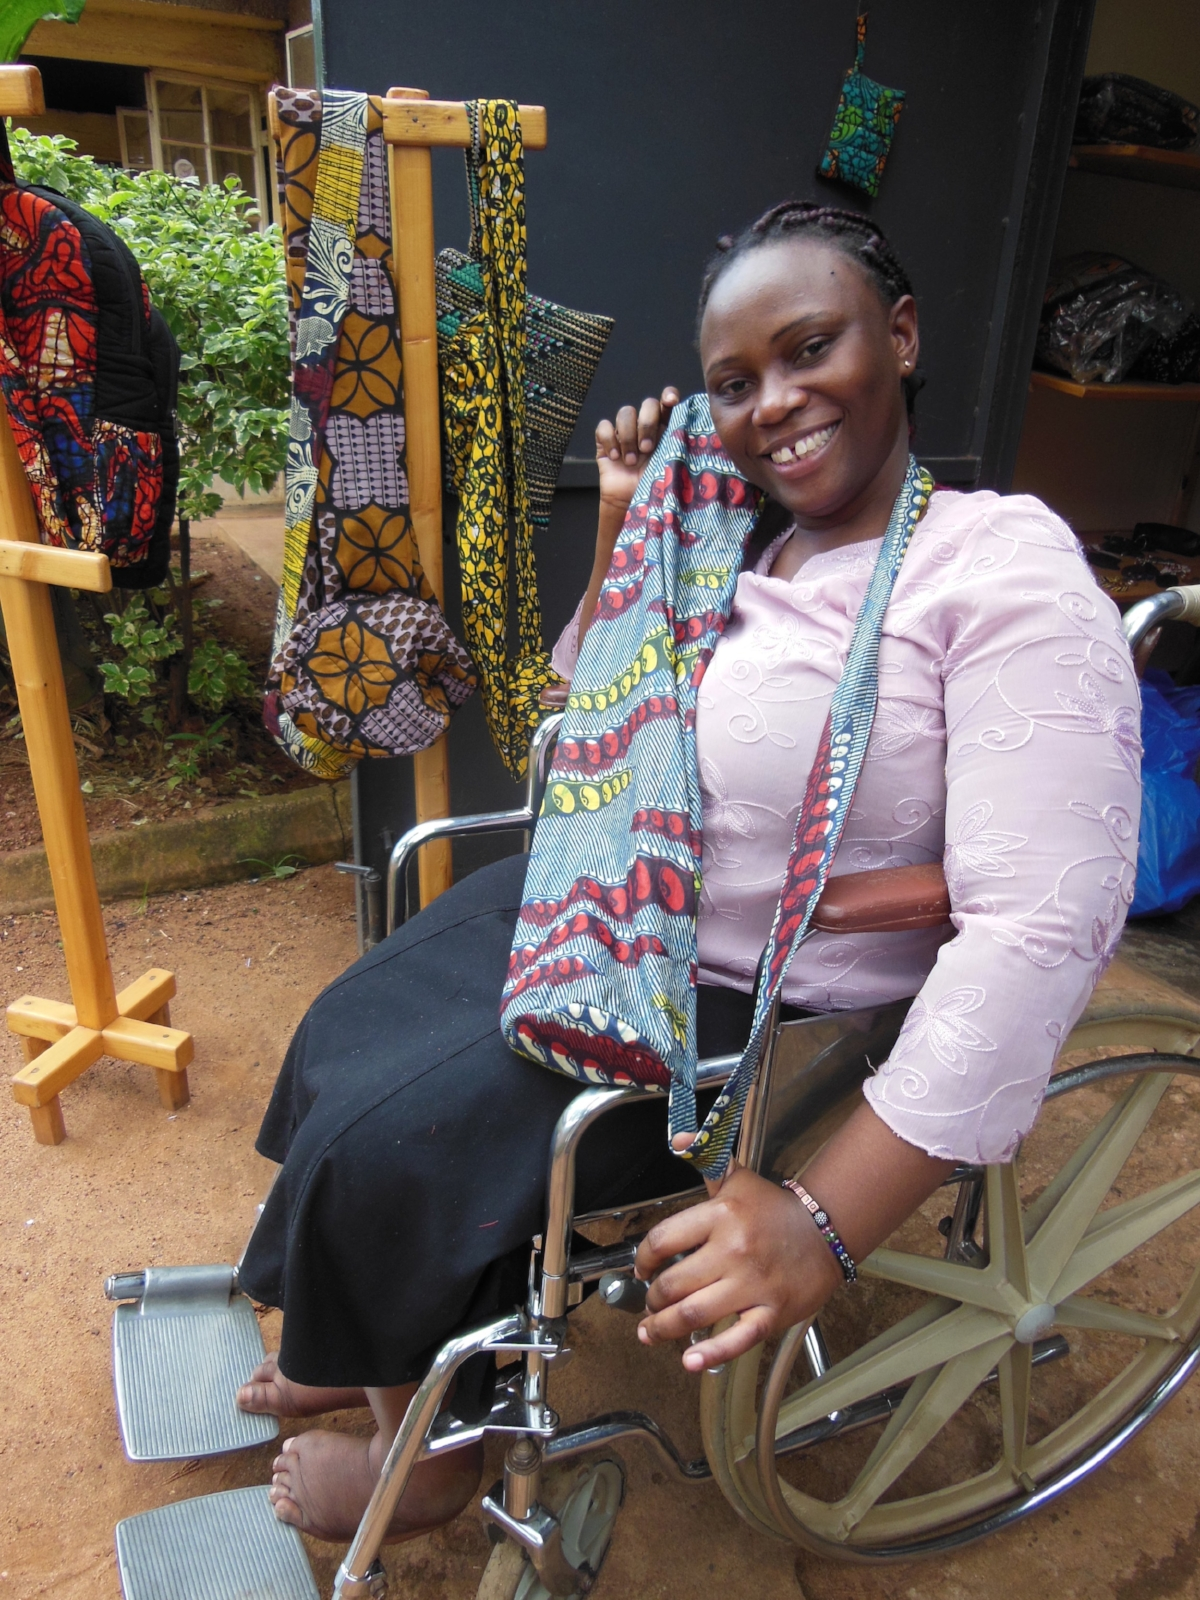 Olivia - Olivia is the founder and head of the Kampala Disabled Initiatives. Like many other women, she was paralysed as a child from polio. She likes sewing yoga mat bags and weekender bags. Her joy is also teaching tailoring to young trainees.